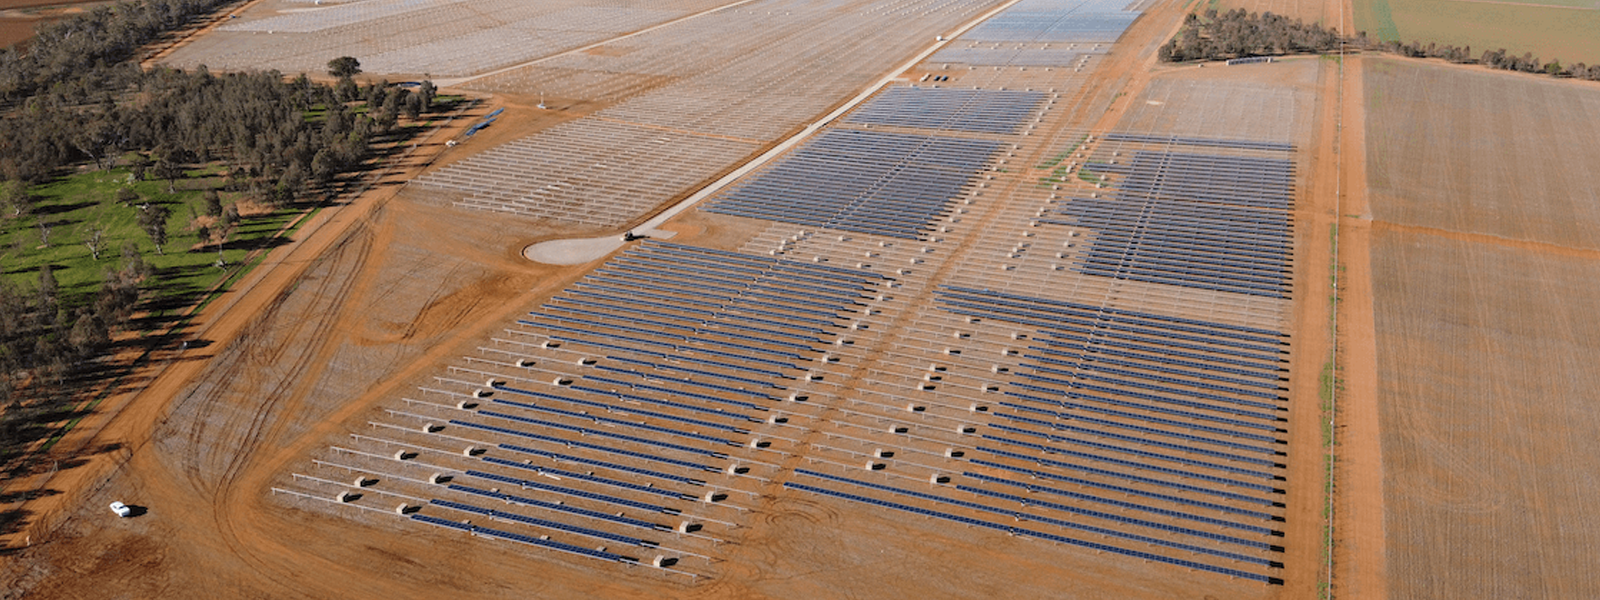 Junee Solar Farm Pilecom New South Wales Aerial view